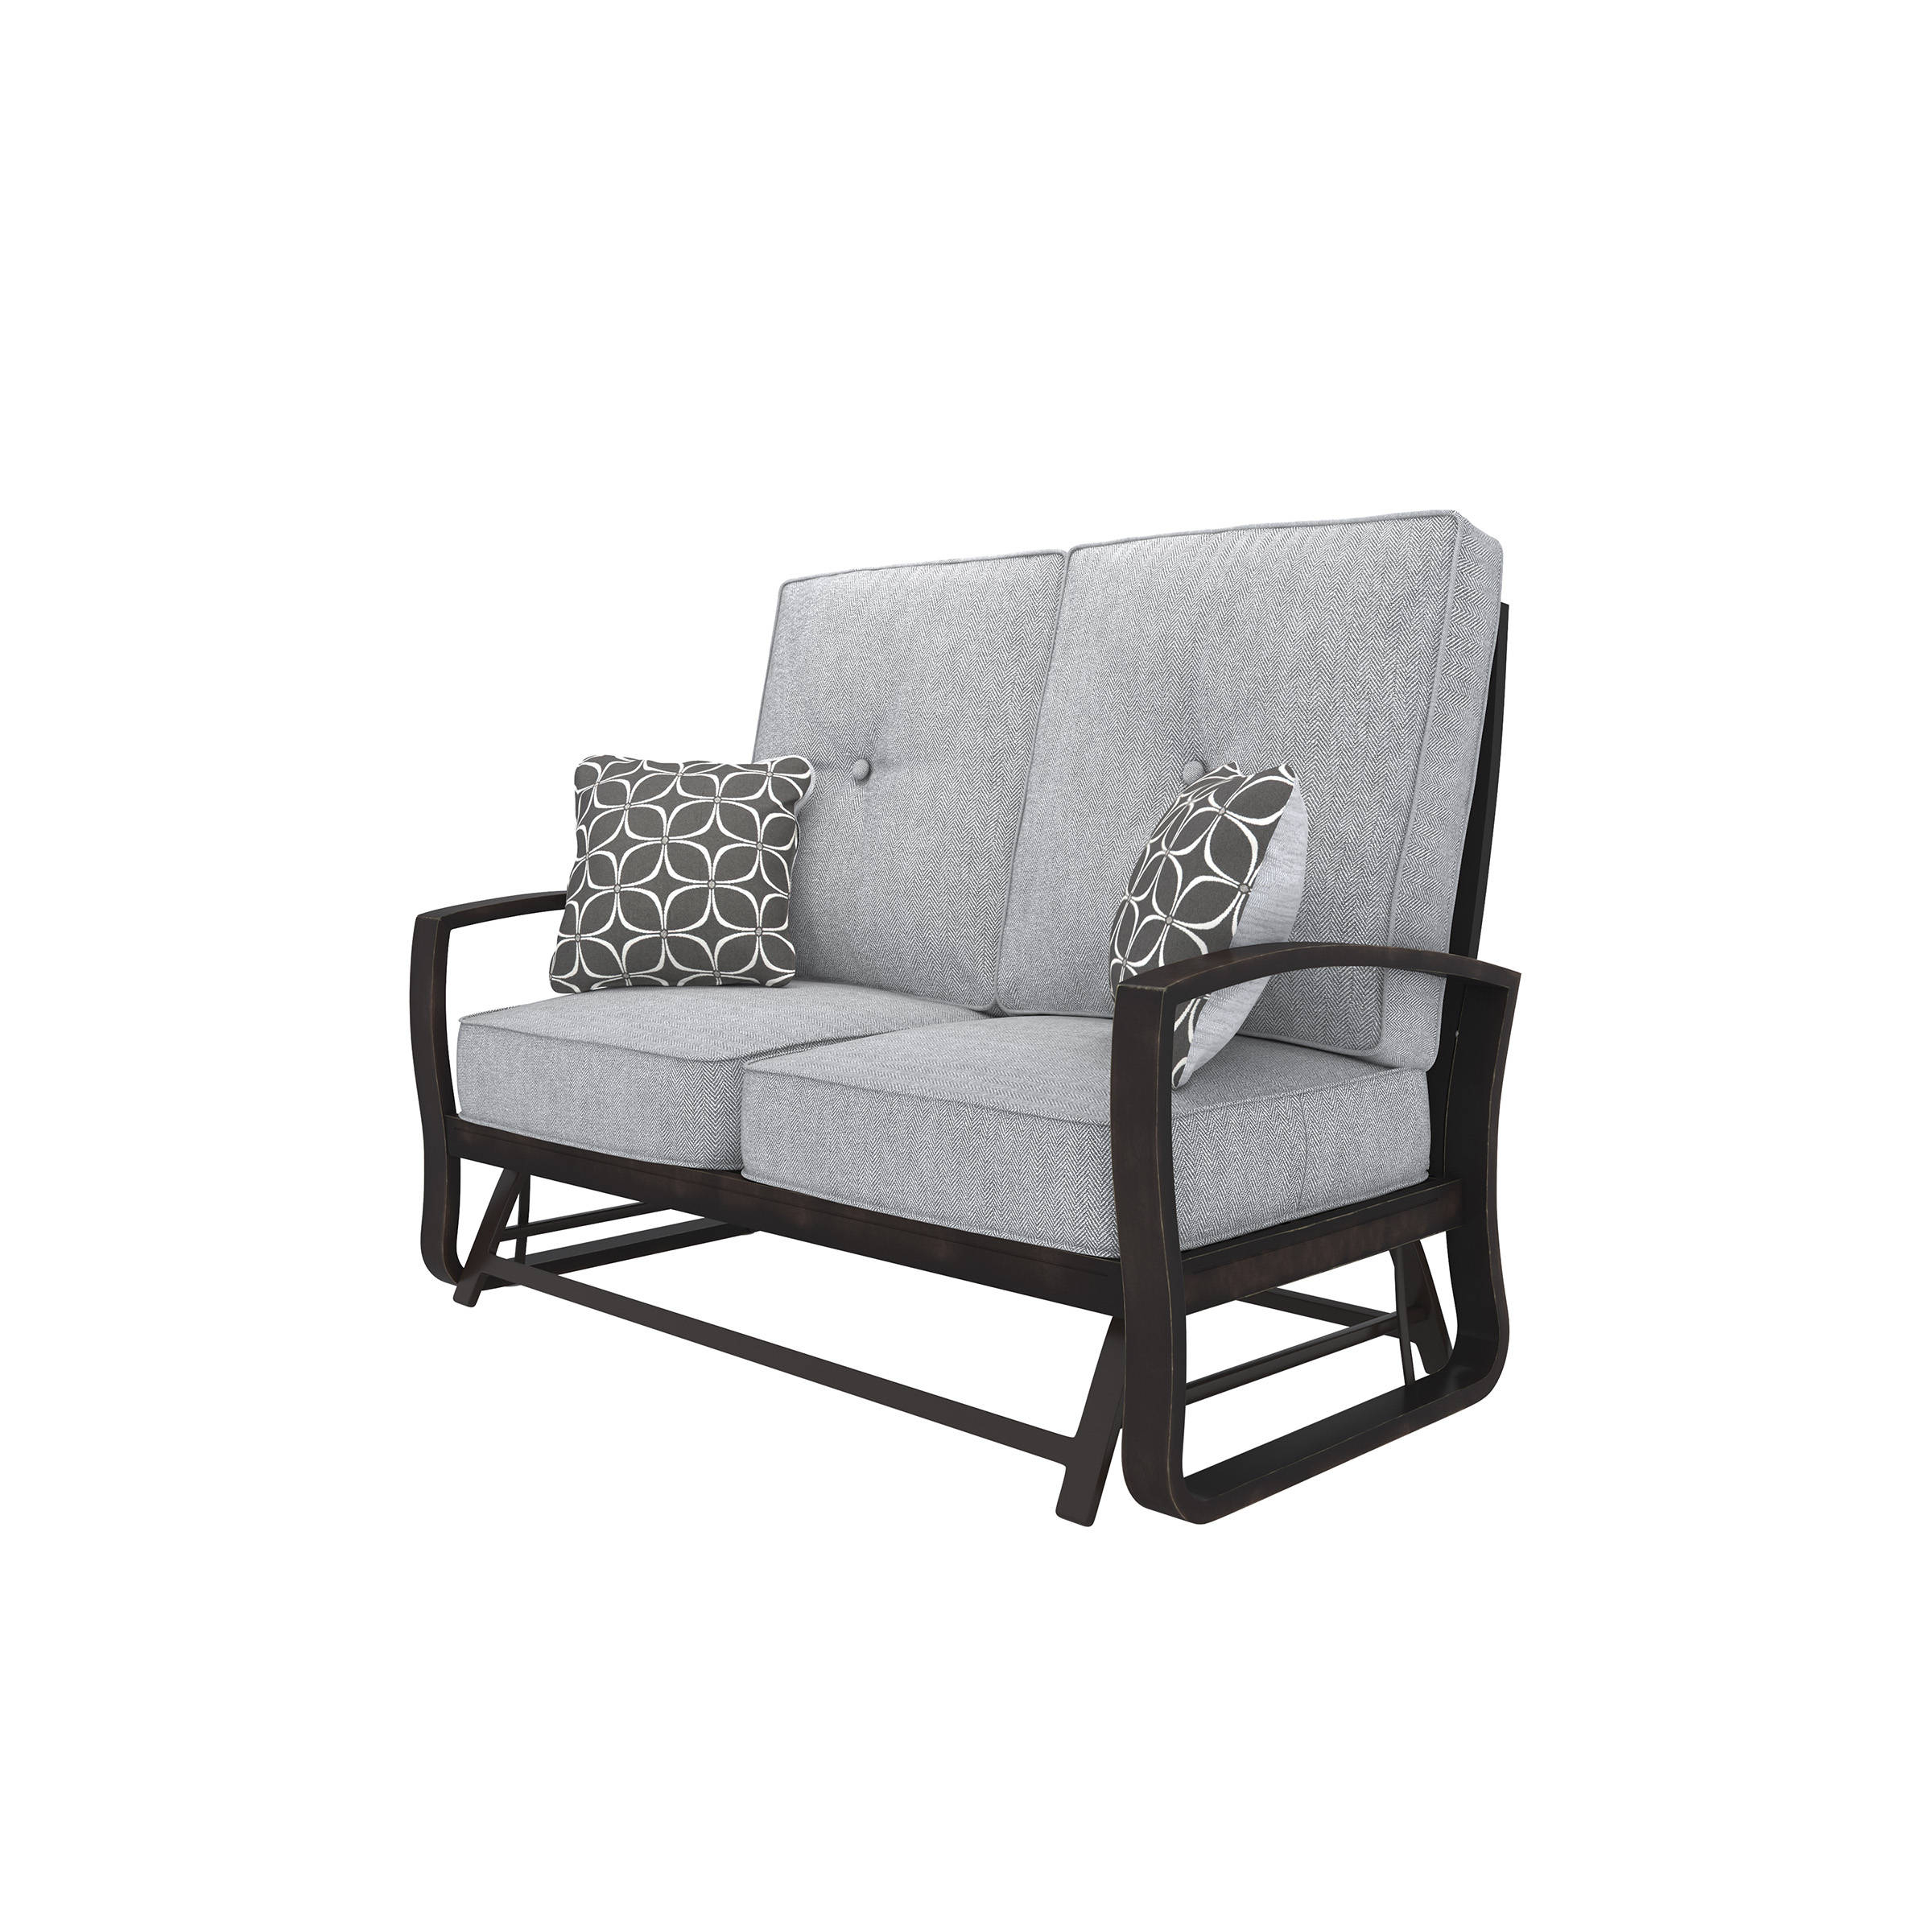 Widely Used Ashley Furniture Castle Island Cushion Glider Loveseat (Gallery 14 of 30)